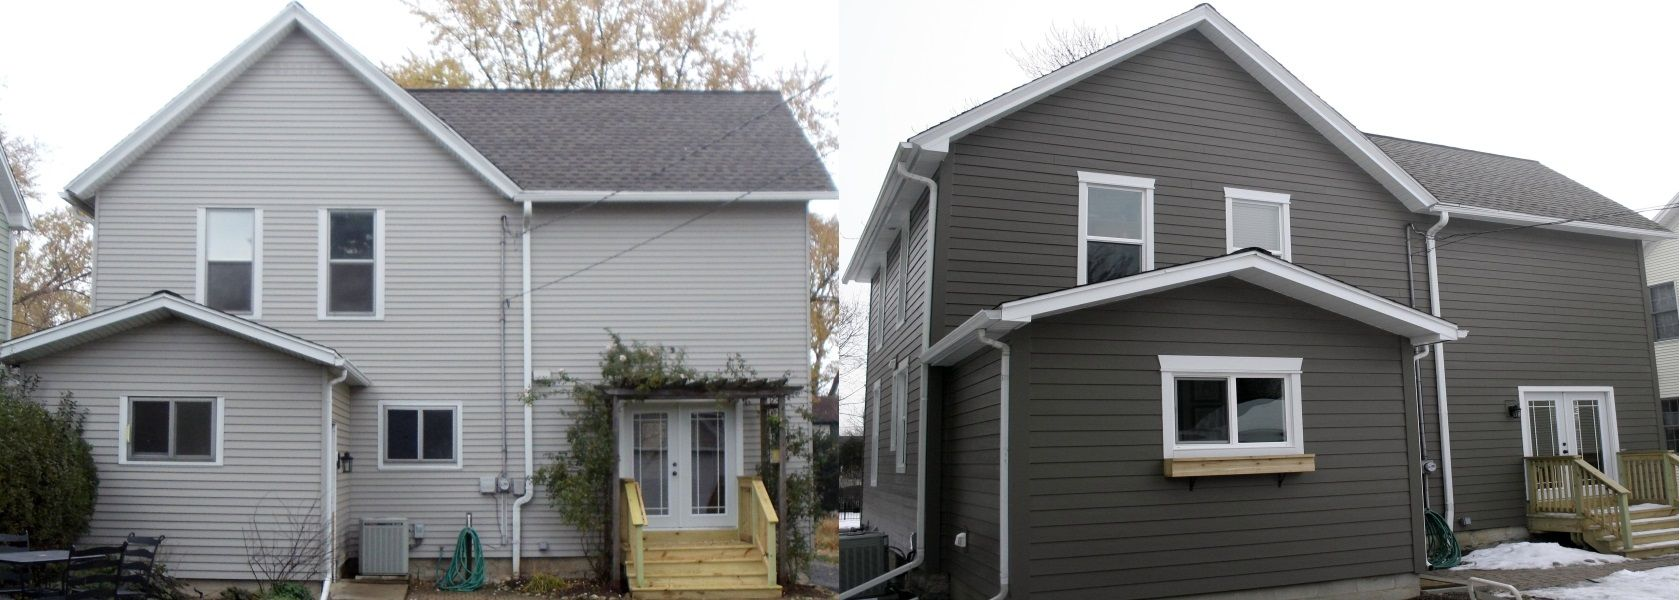 Siding Windows Roofing Contractors Naperville Il James Hardie Siding Hardie Siding Roofing Contractors